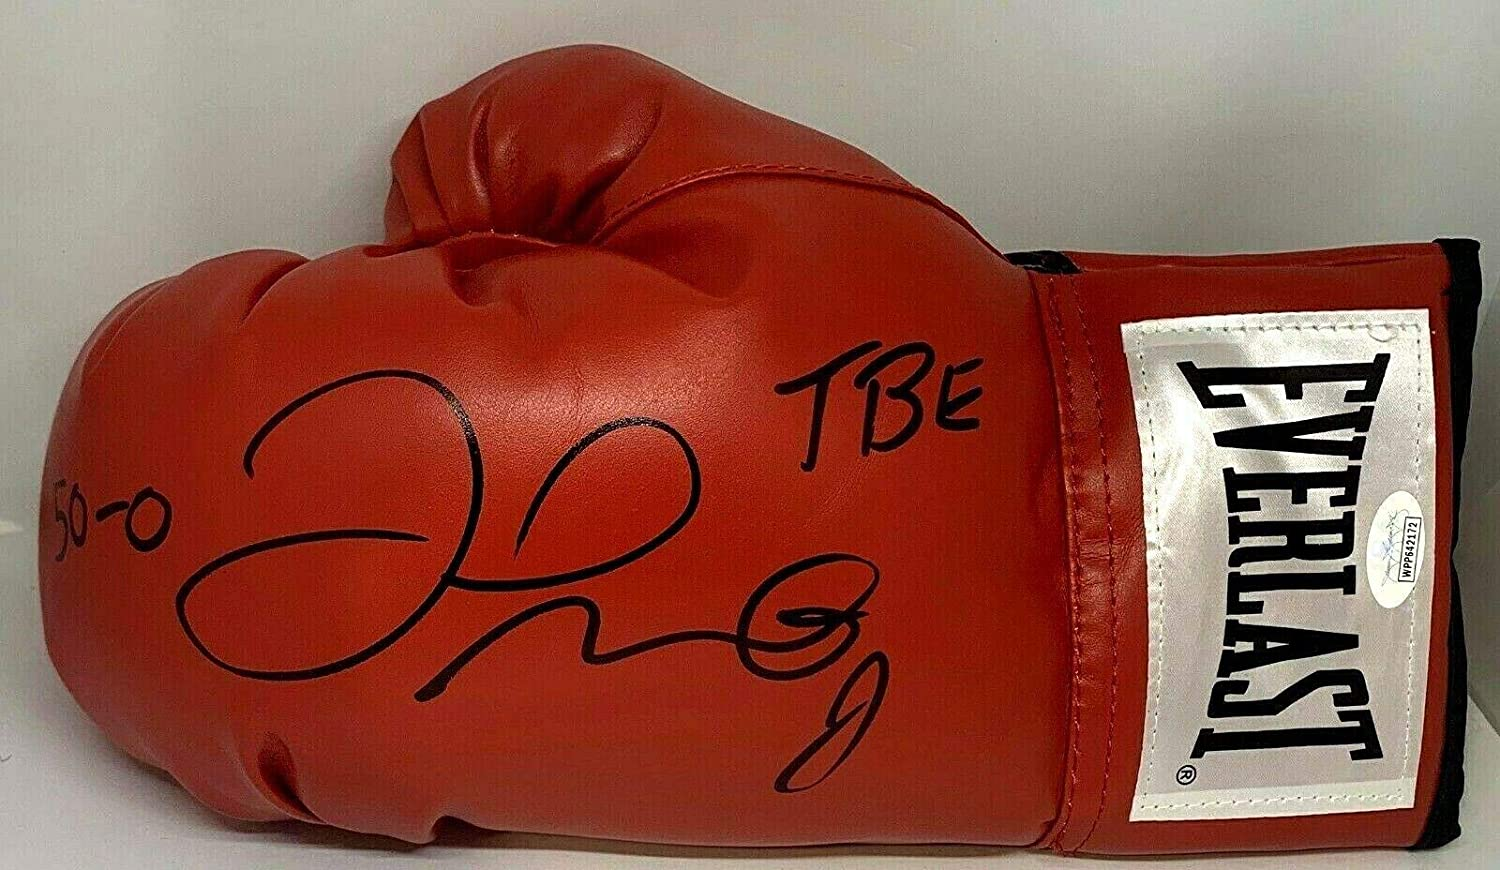 Floyd Mayweather Signed Autographed Red Boxing Glove Authen Left TBE 50-0 B - JSA Certified - Autographed Boxing Gloves